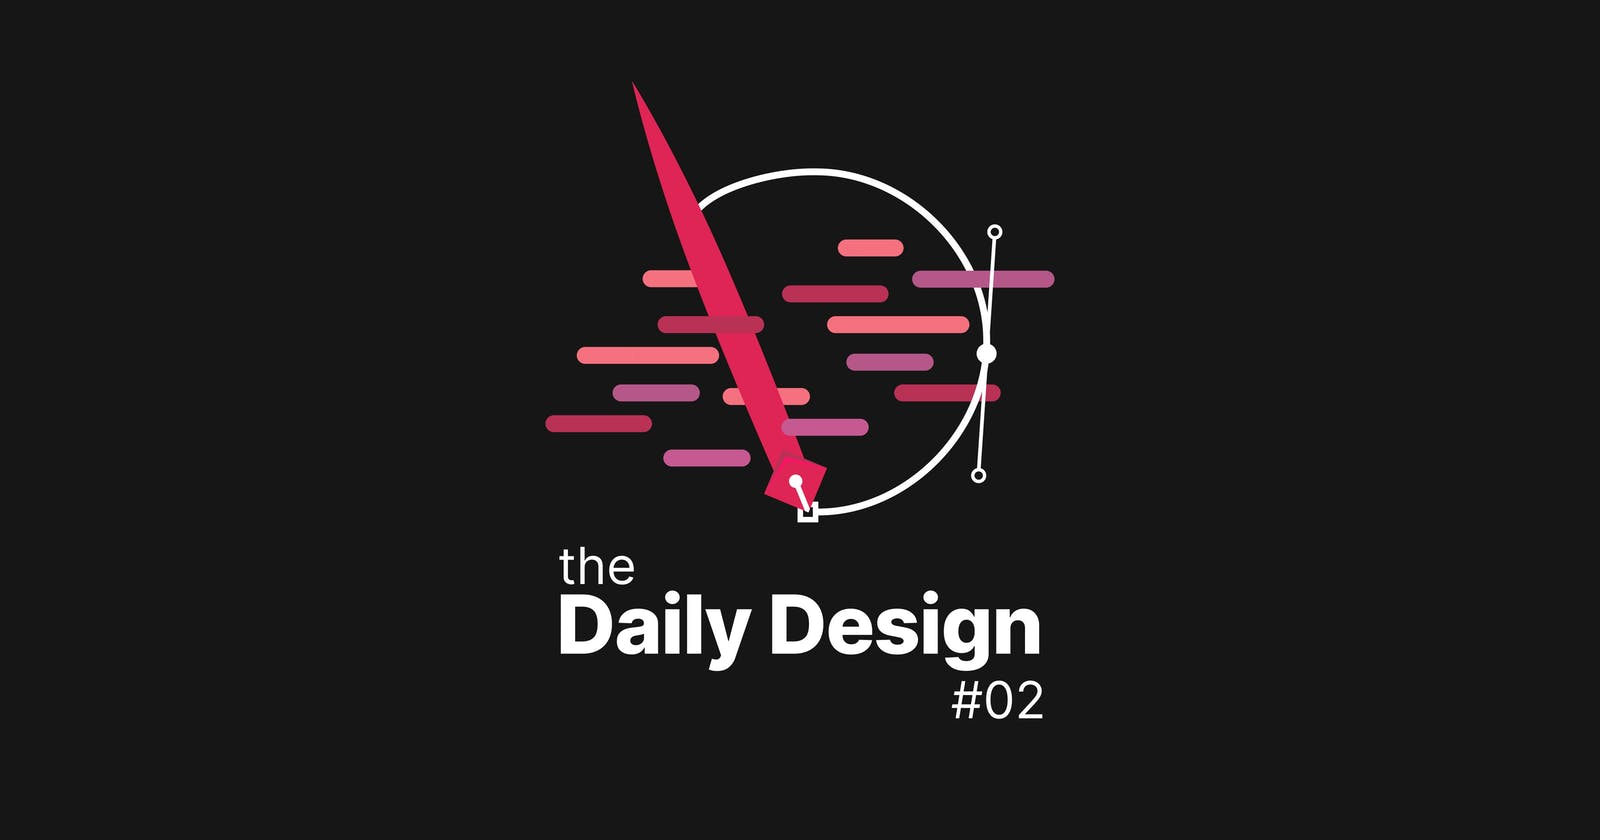 The Daily Design #02